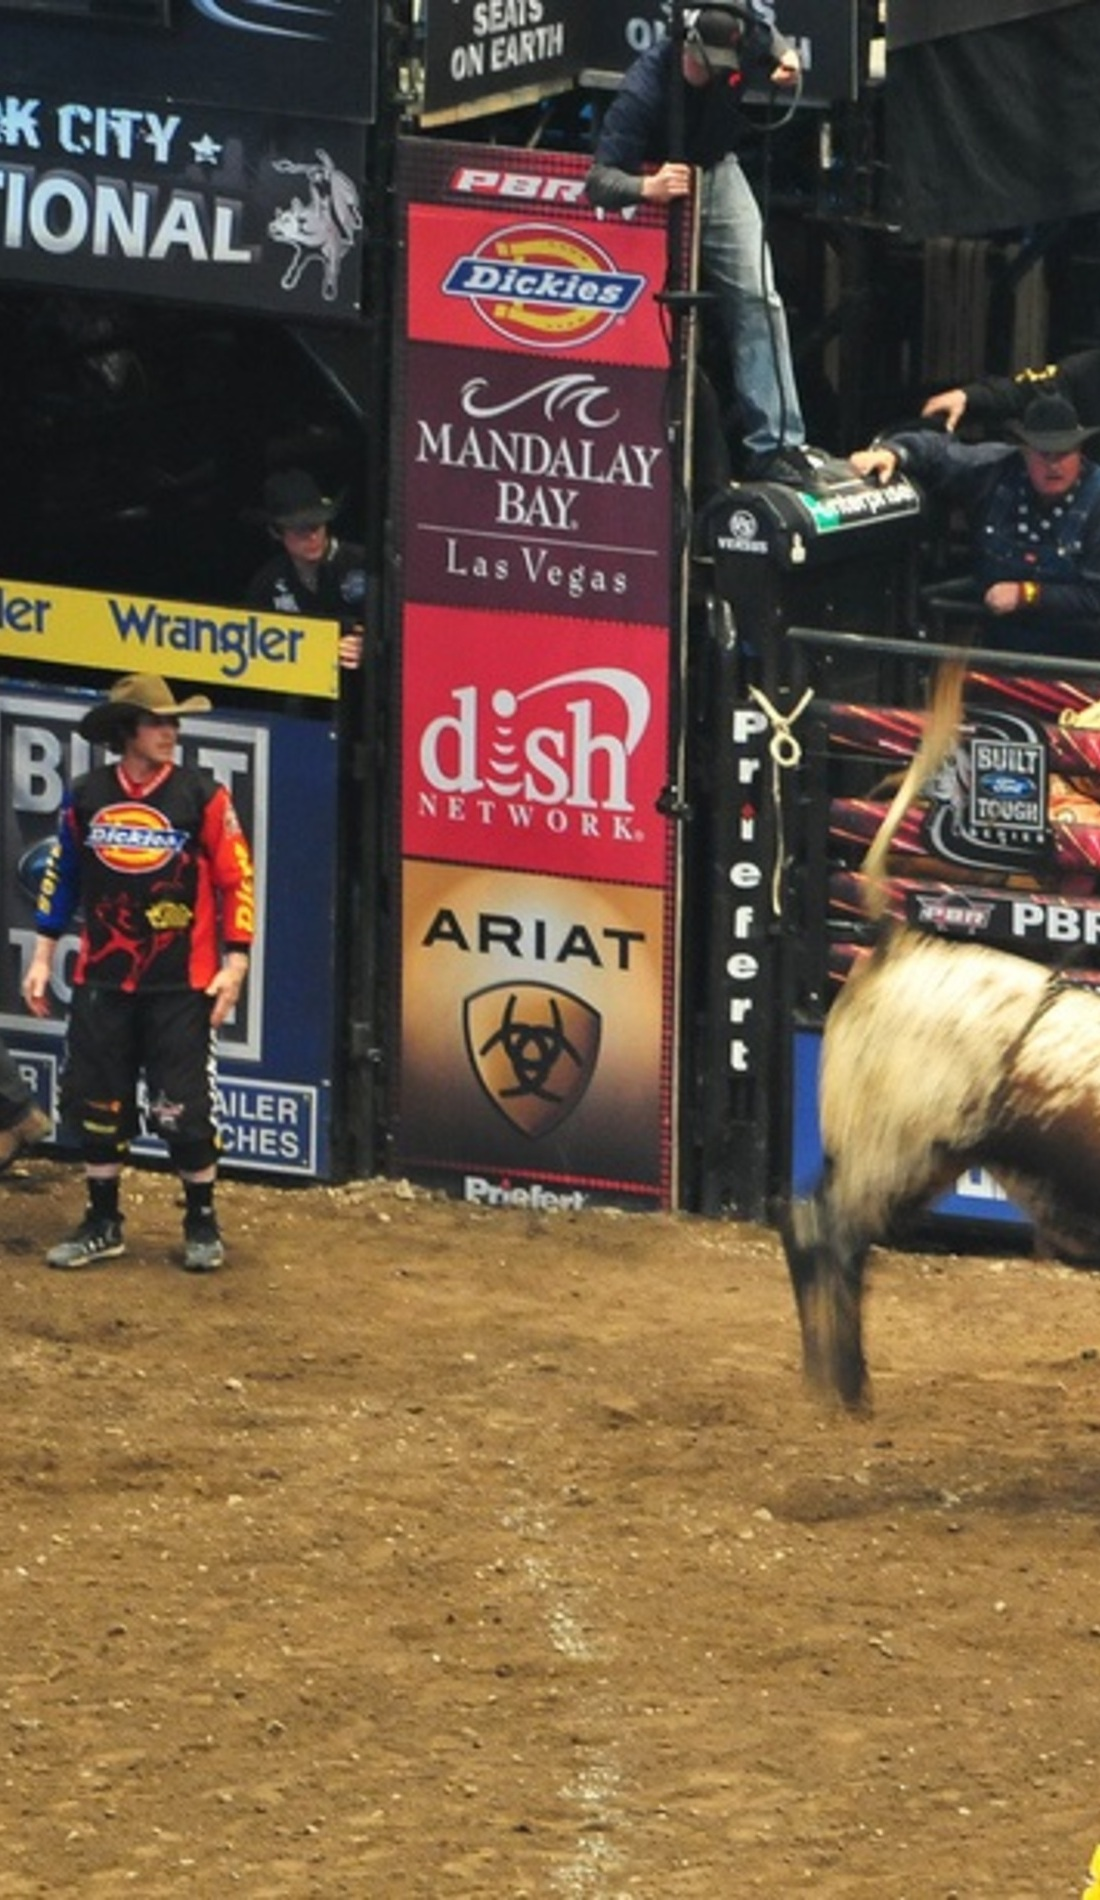 A Professional Bull Riders live event